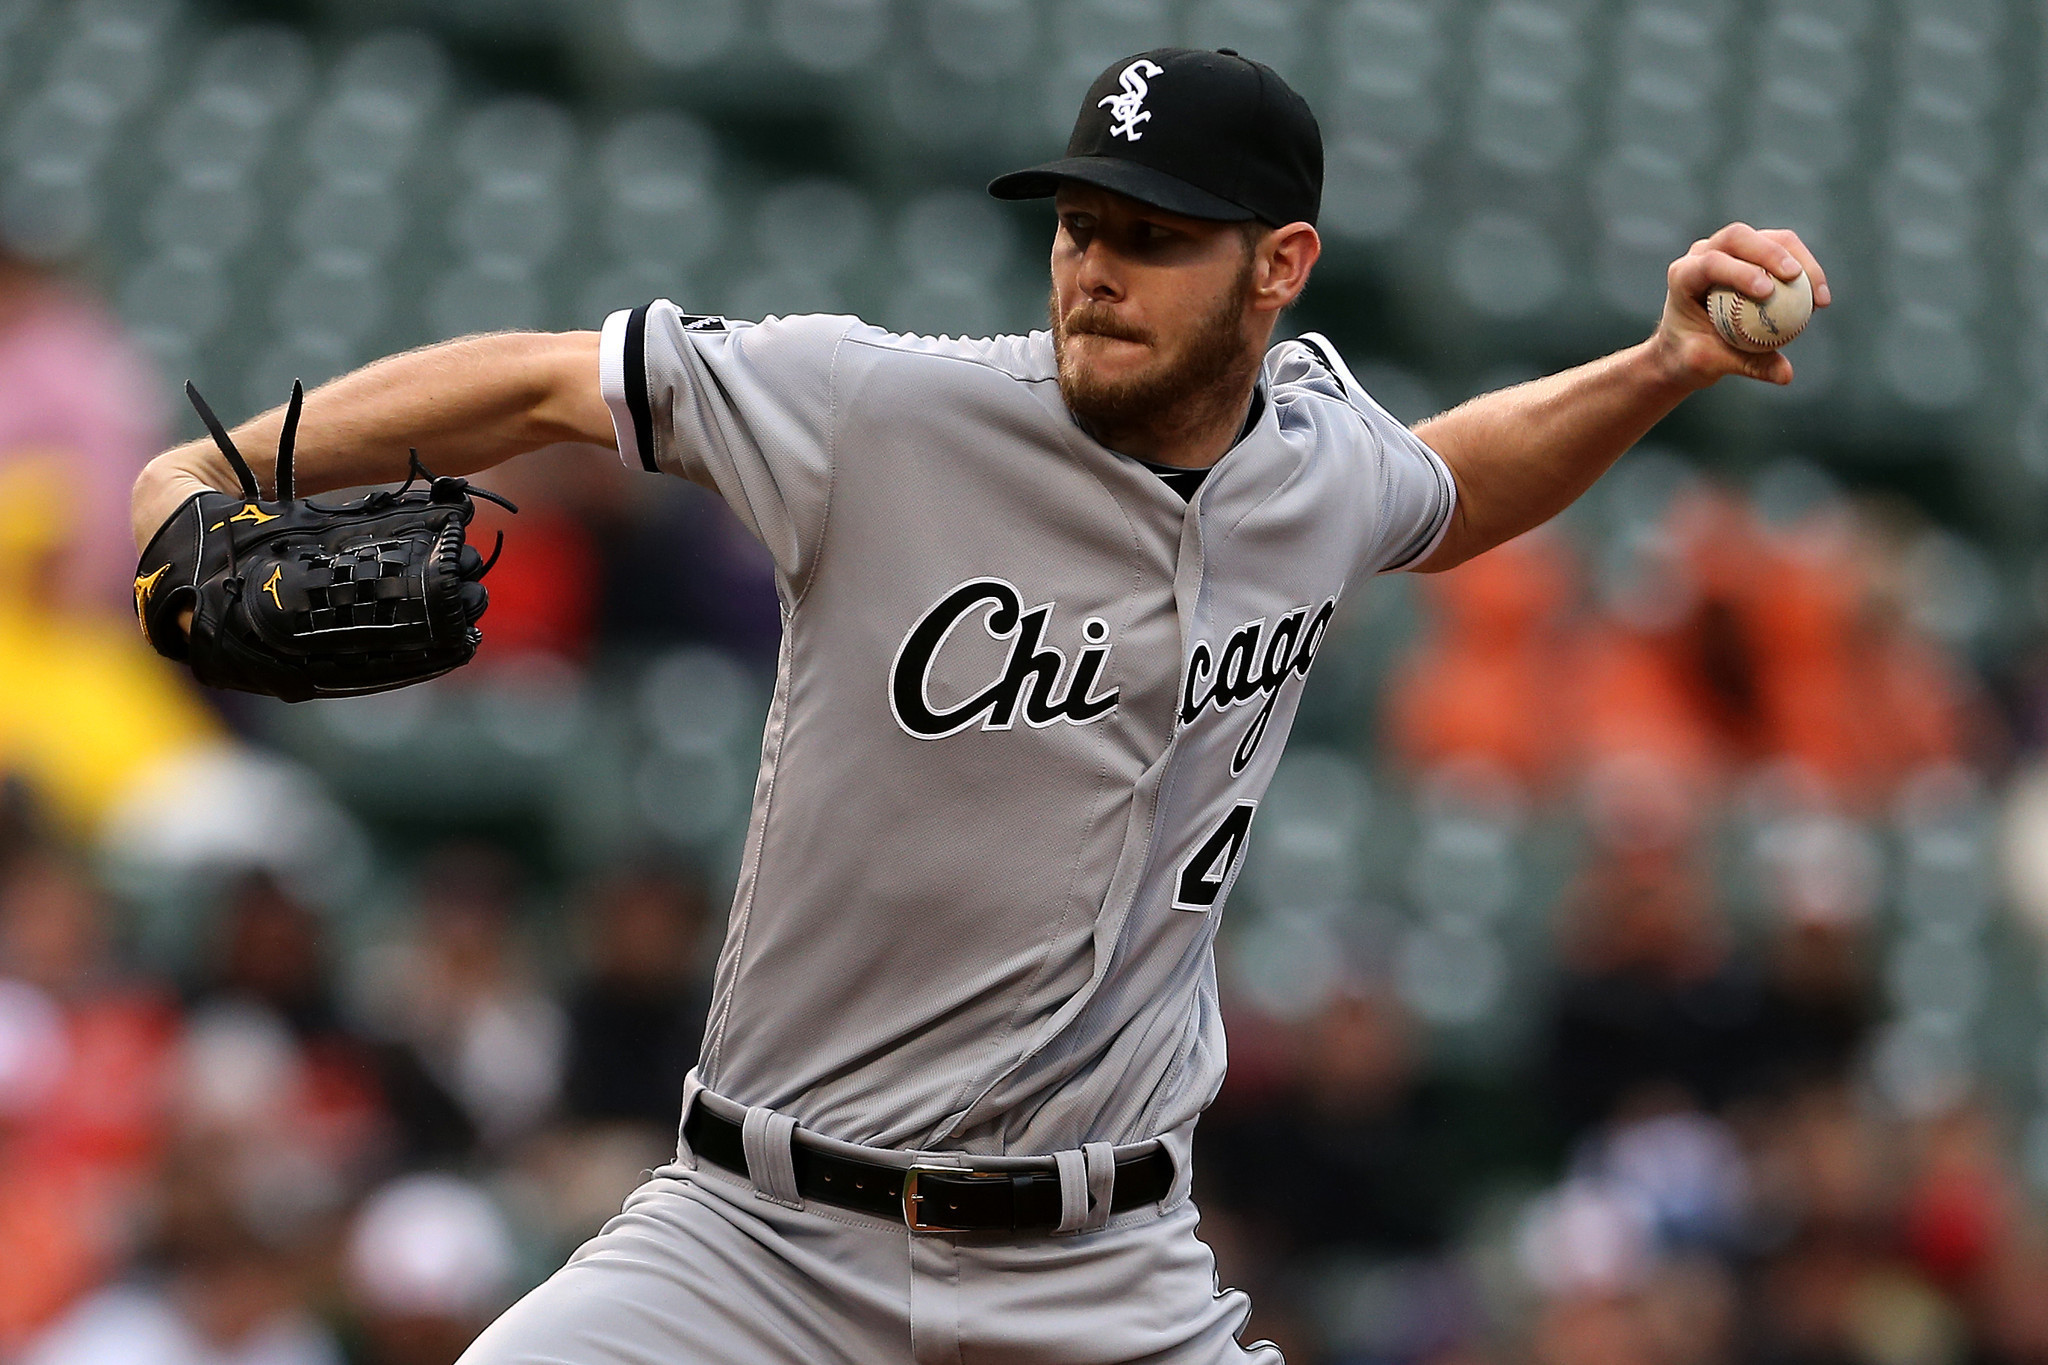 Bal-with-chris-sale-going-to-boston-orioles-issues-with-left-handed-pitching-20161206